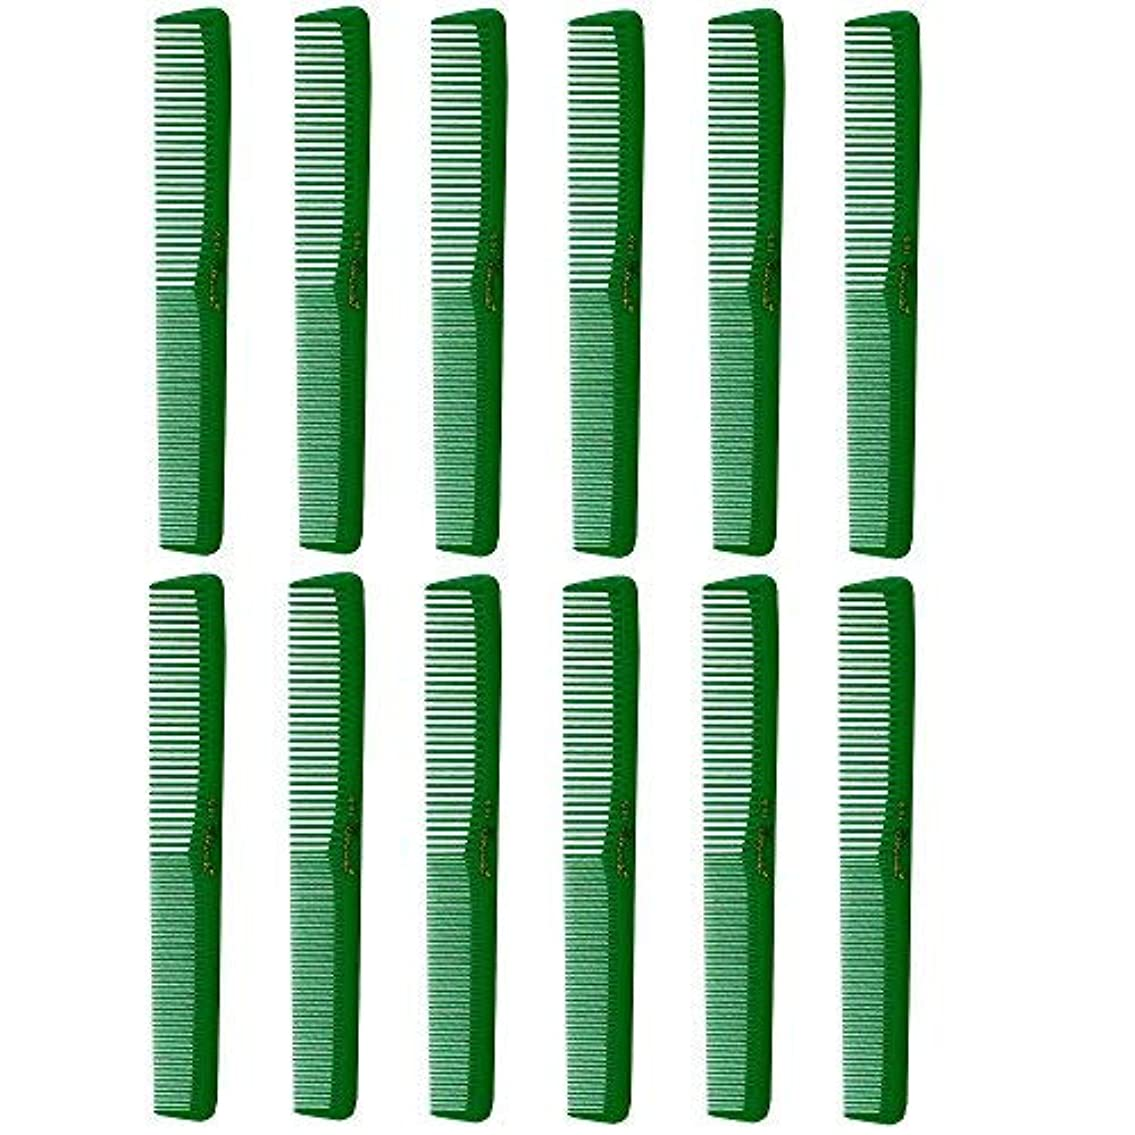 リーガンまでバージンBarber Beauty Hair Cleopatra 400 All Purpose Combs (12 Pack) 12 x SB-C400-GREEN [並行輸入品]